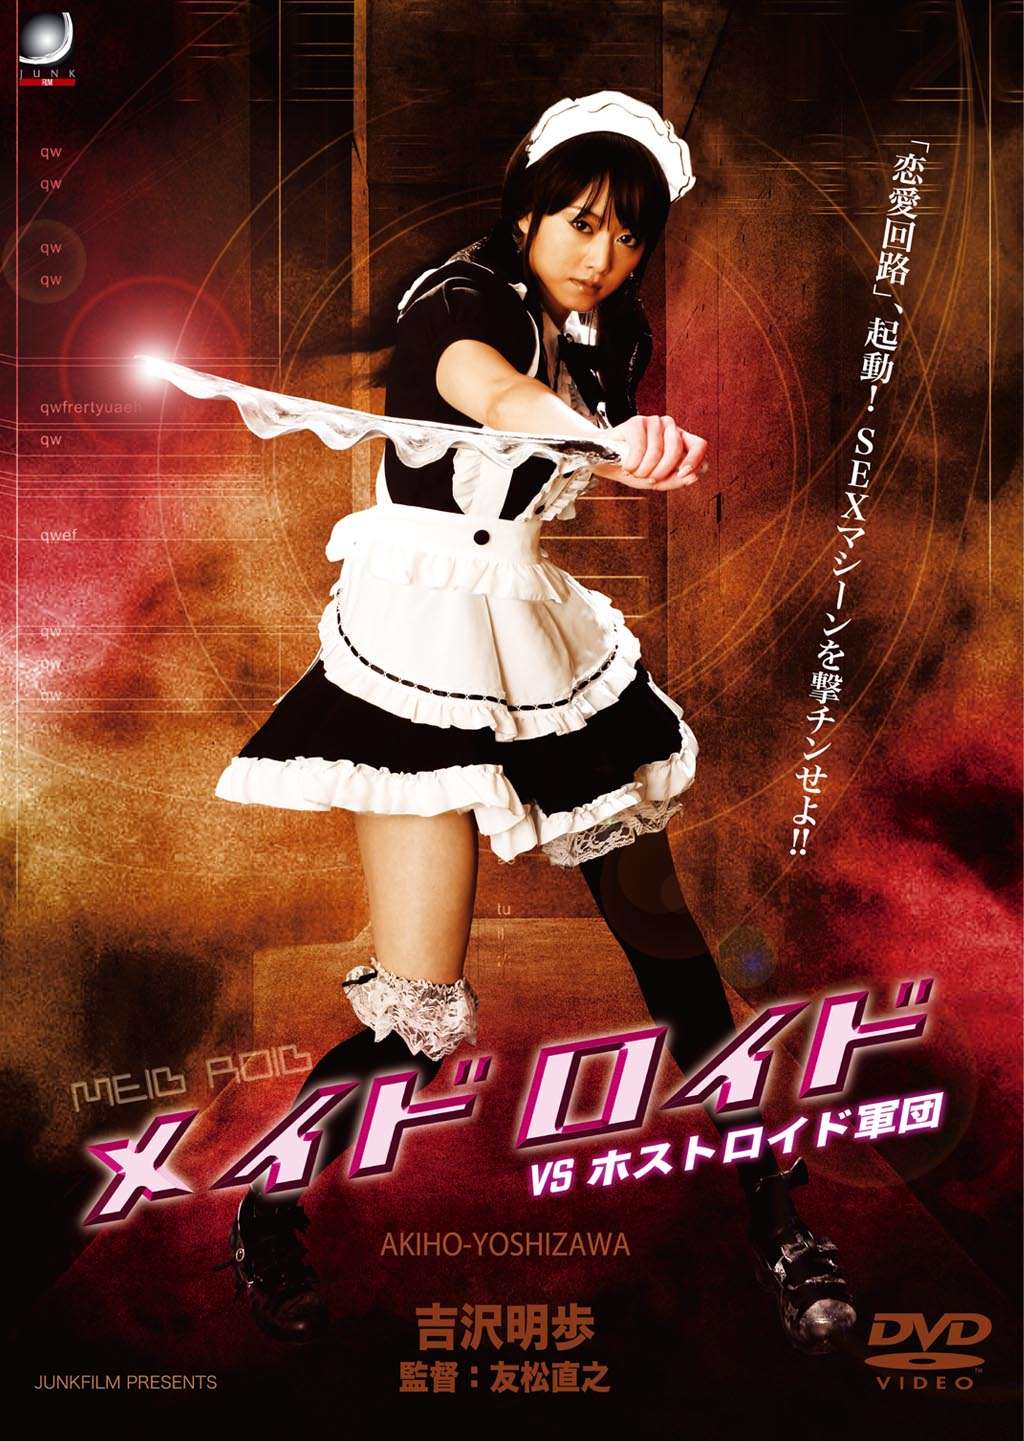 20160107.01.02 Maid-DroiD 2 - Maidroid vs. Hostroids (2010) (JPOP.ru) cover.jpg